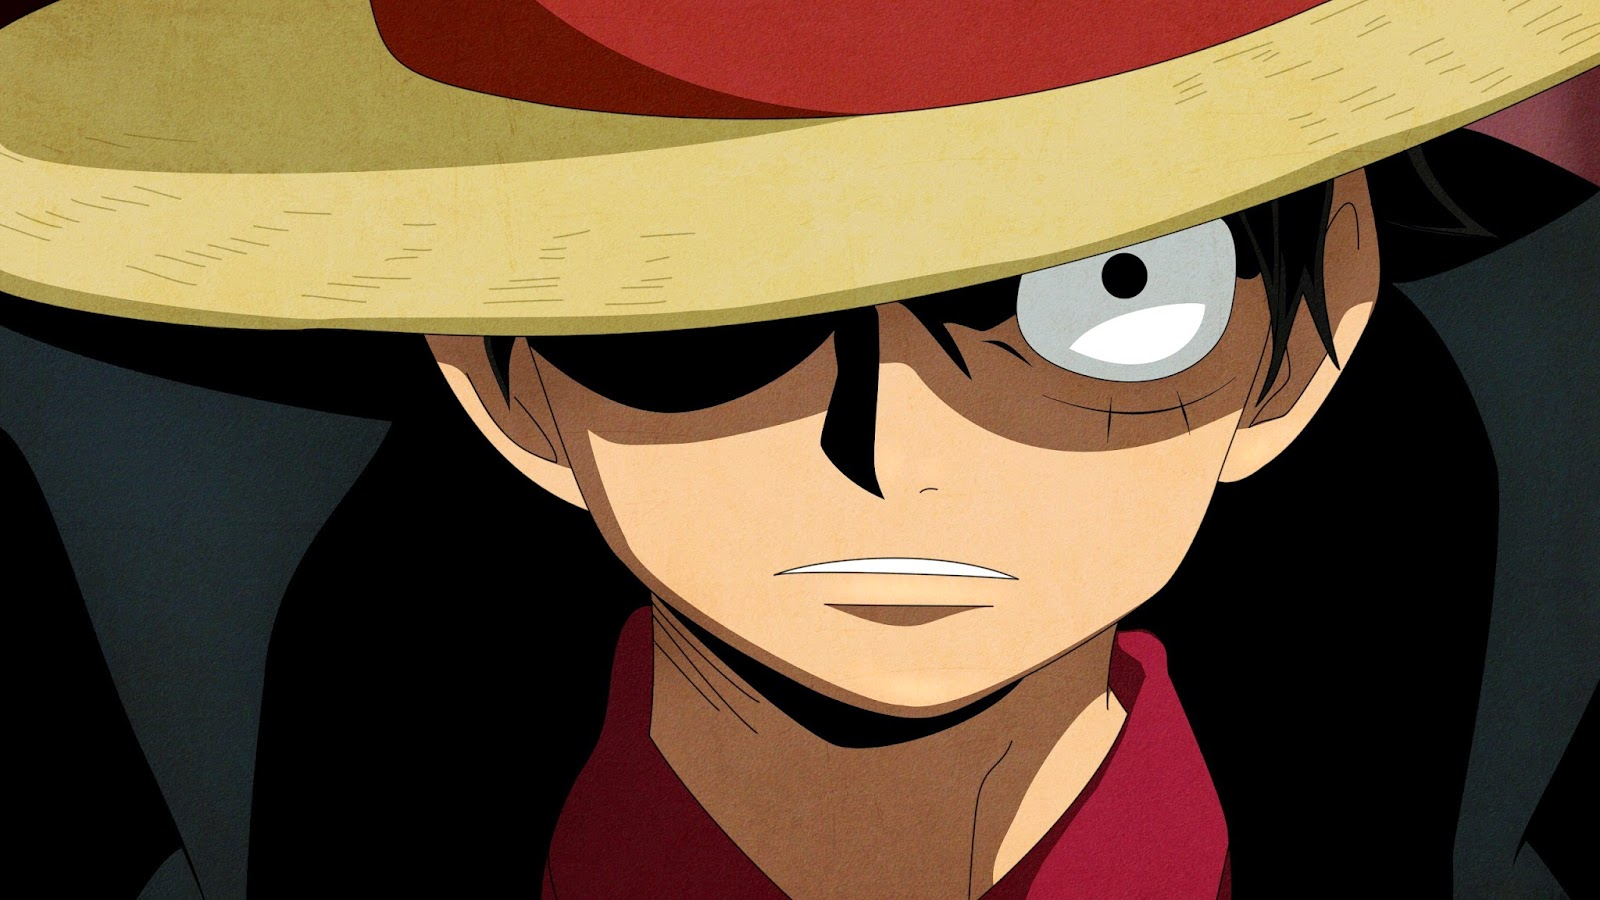 Luffy The Captain by PikoloZ-Dreamin on DeviantArt